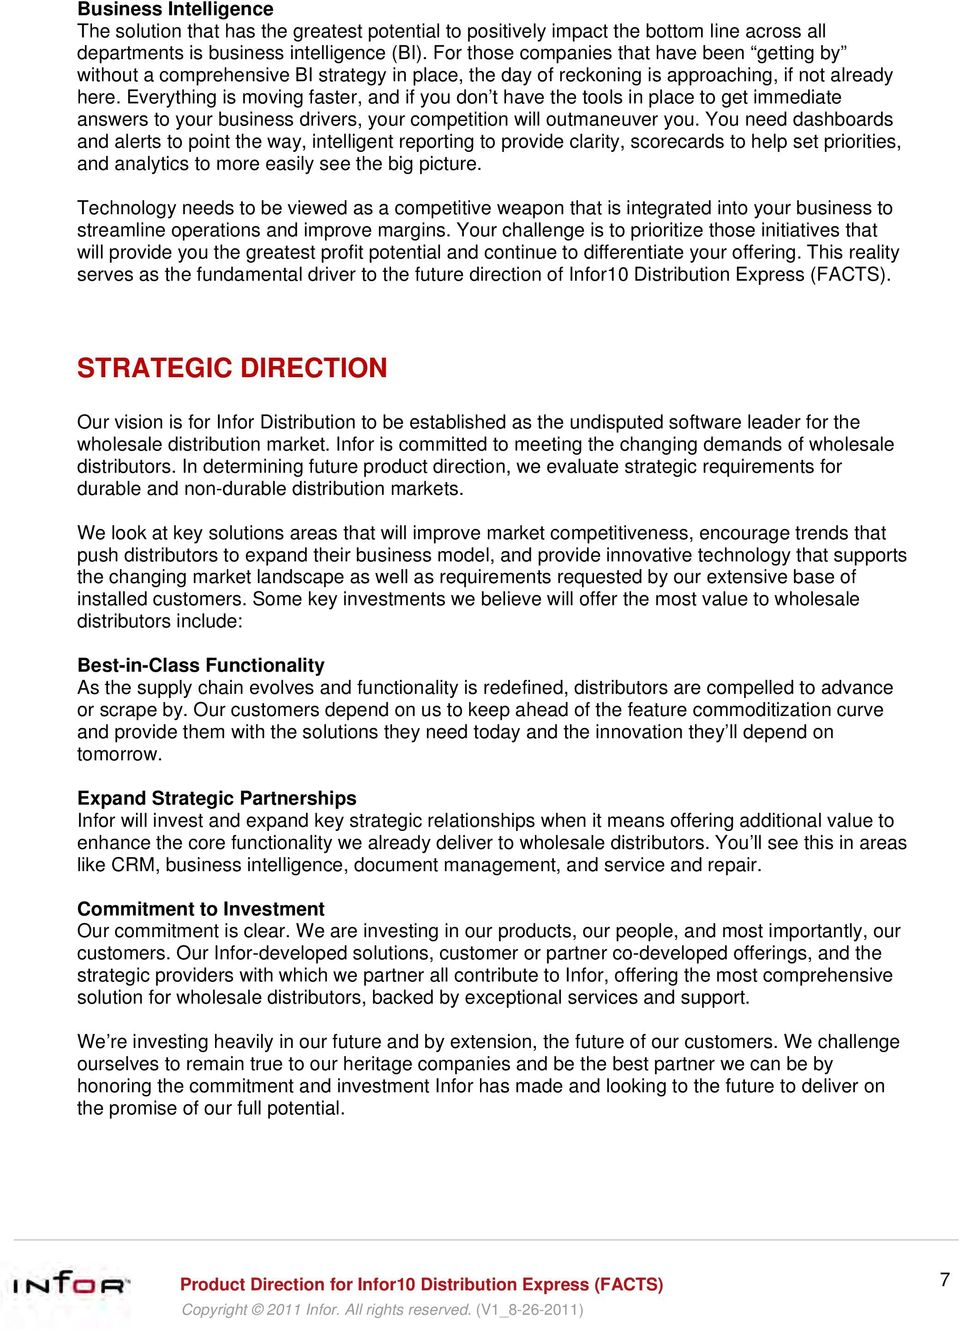 Strategic Product Direction Infor10 Distribution Express (FACTS) - PDF